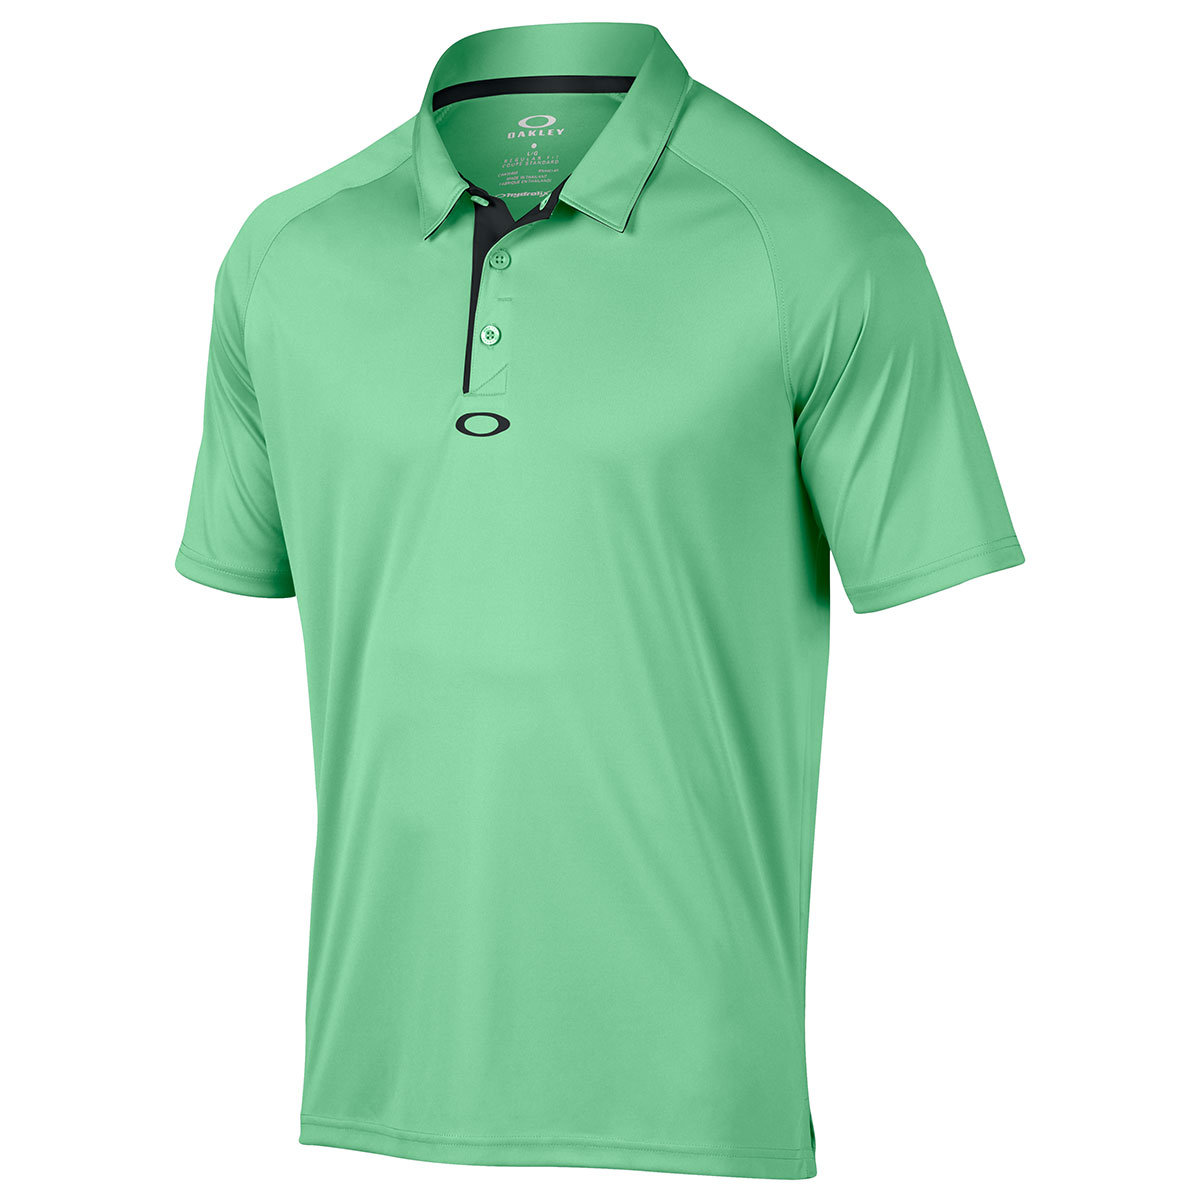 Oakley golf 2017 mens elemental 2 0 polo shirt 432632 ebay for Mens golf polo shirts